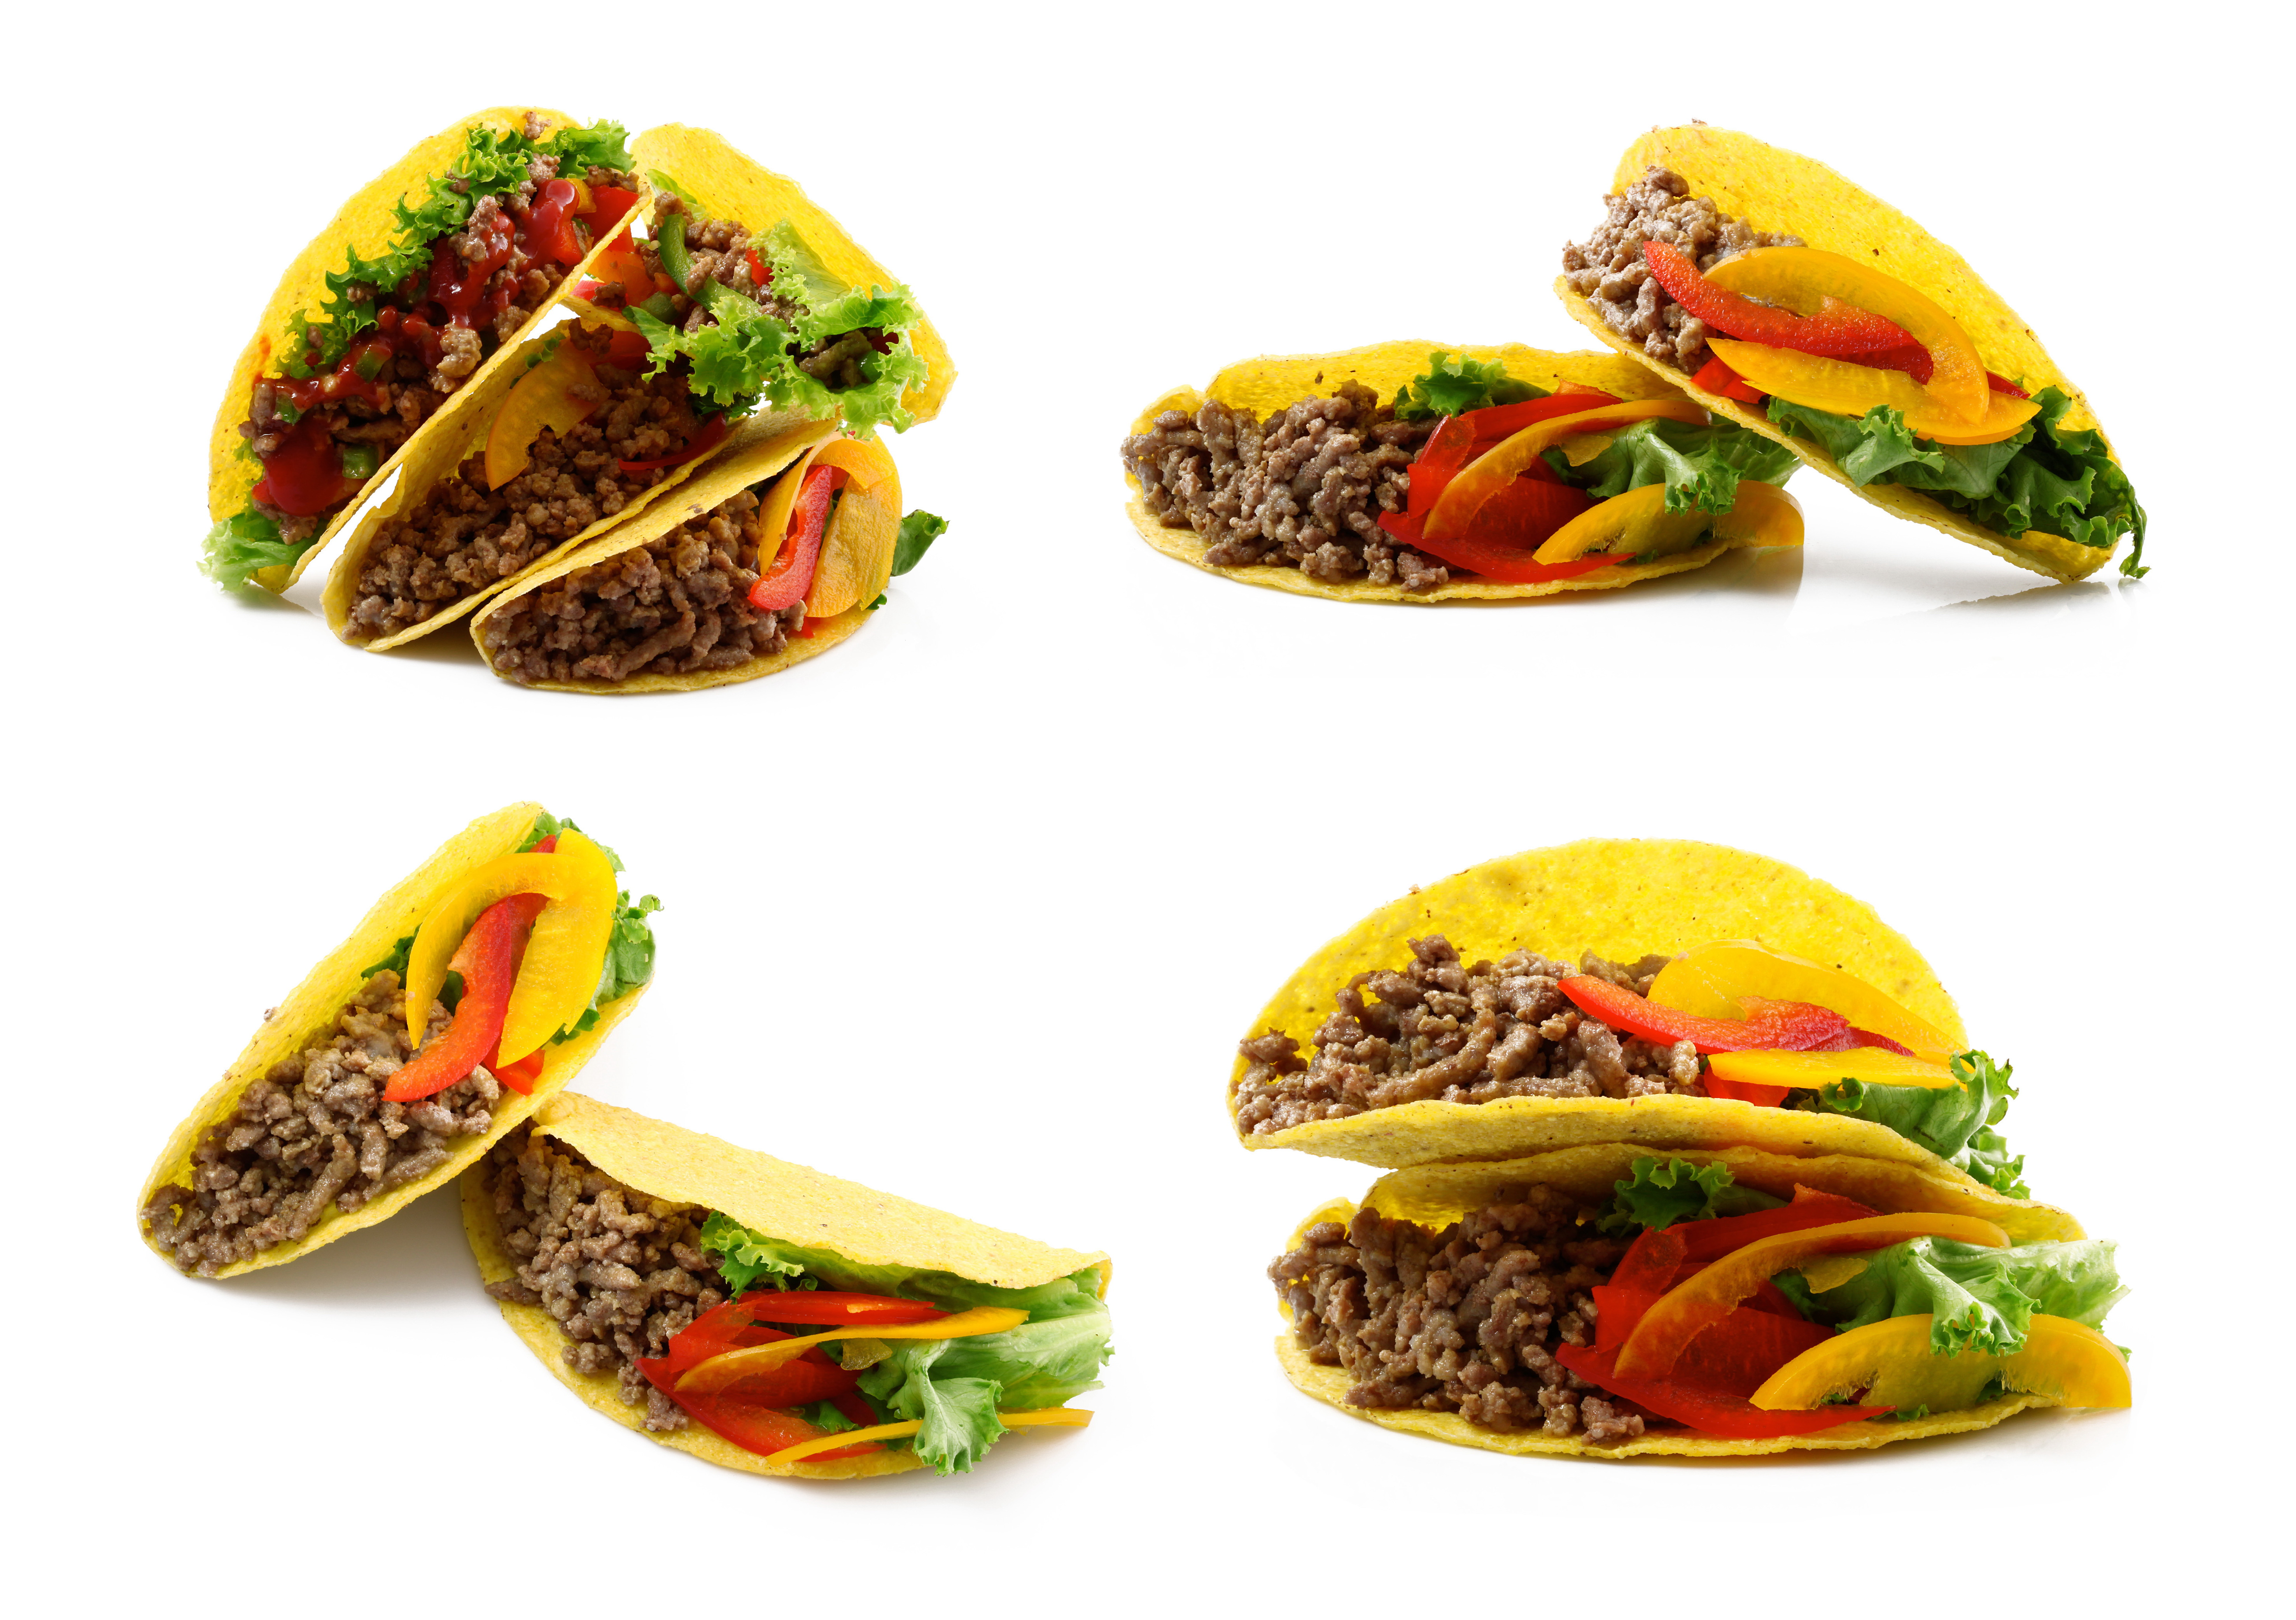 2 Tacos Hd Wallpapers Background Images Wallpaper Abyss